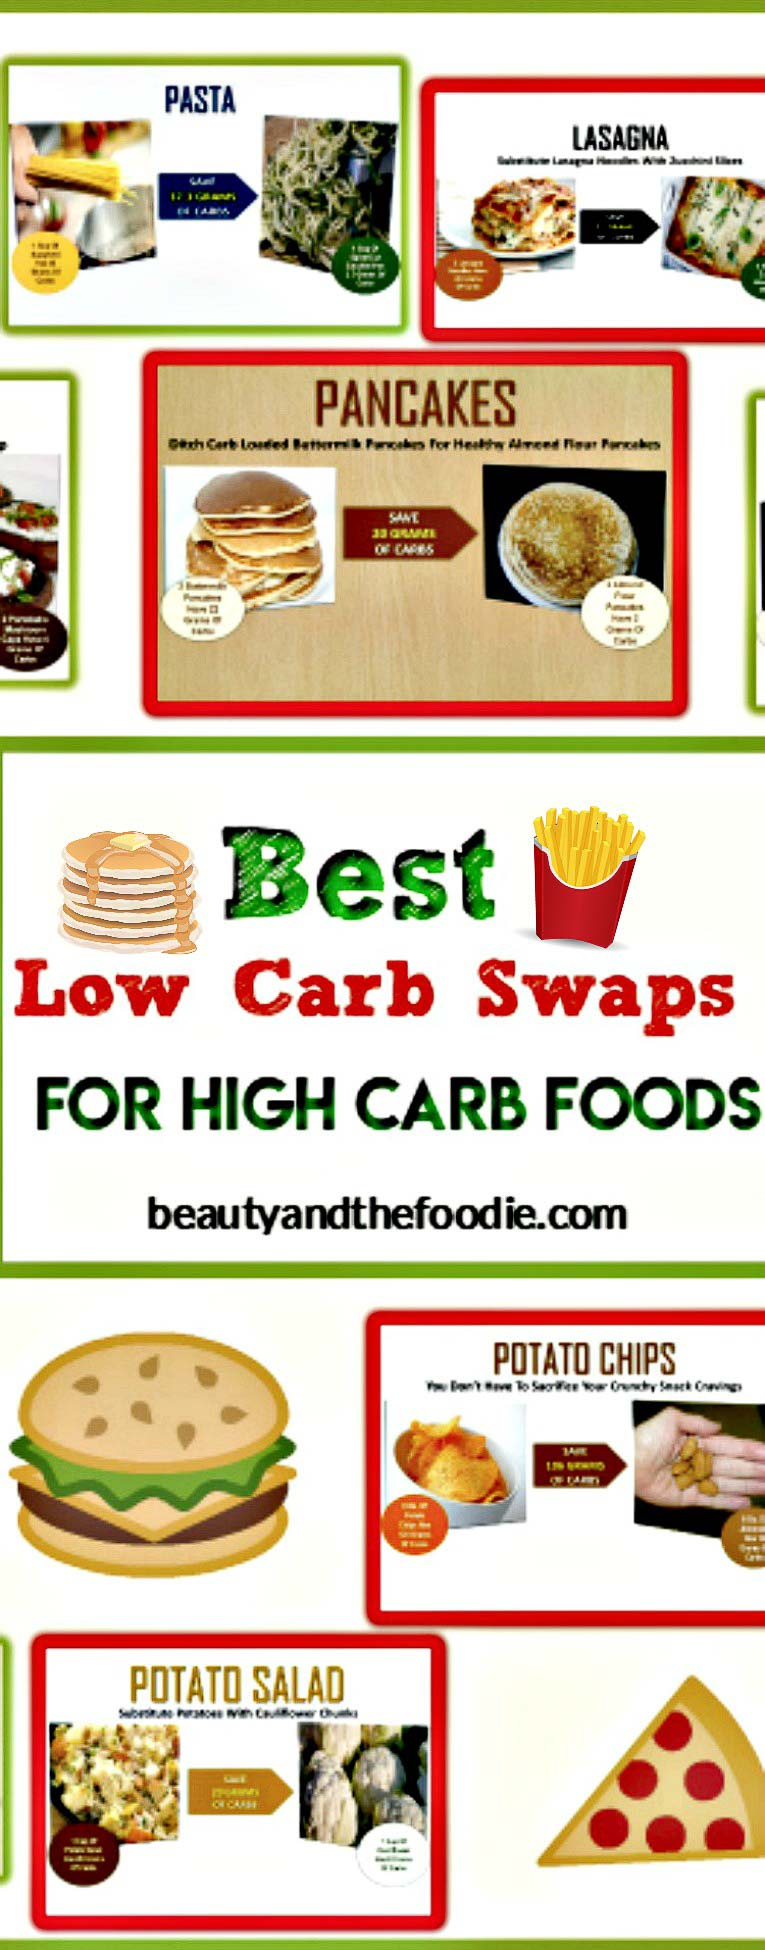 Best Low Carb Swaps for High Carb Foods